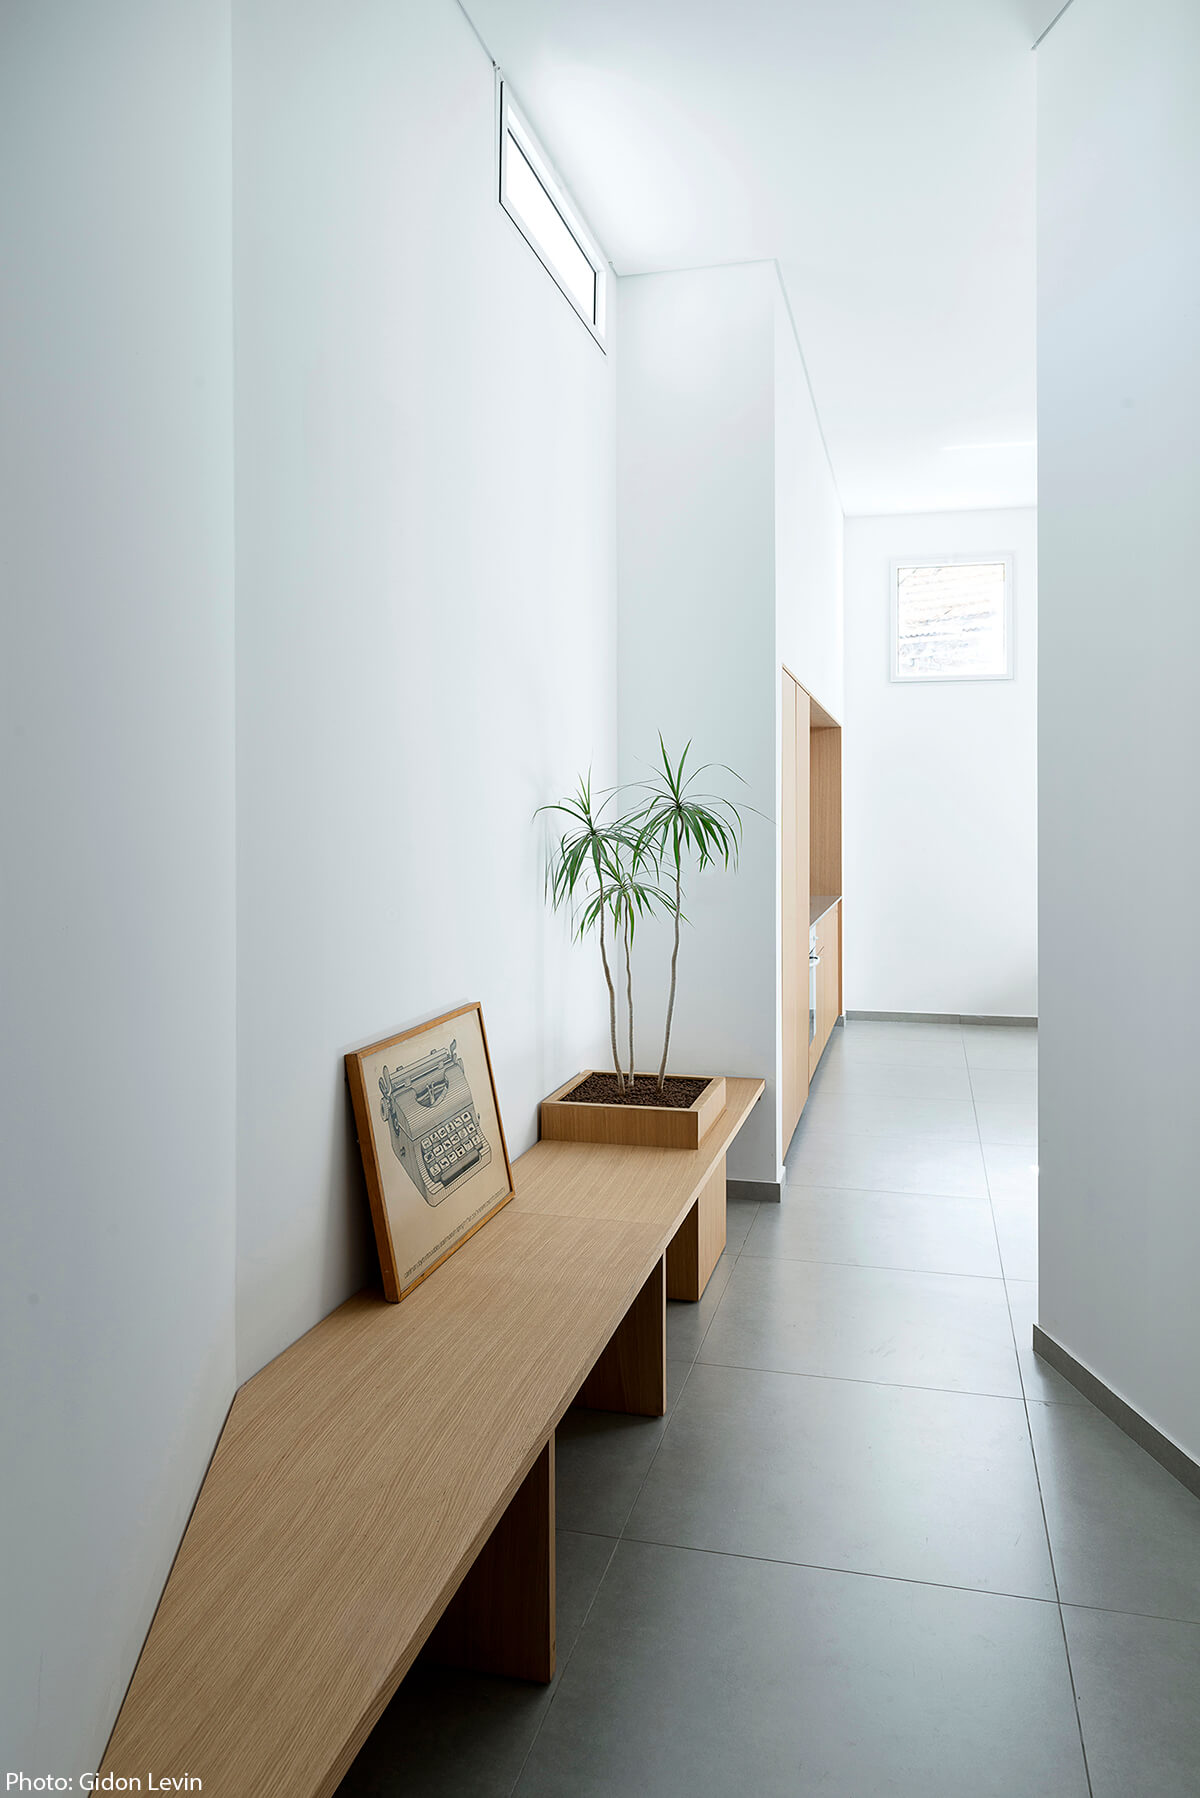 Wooden bench in 50sqm apartment in Jaffa designed by Itai Palti Architect - Fineshmaker